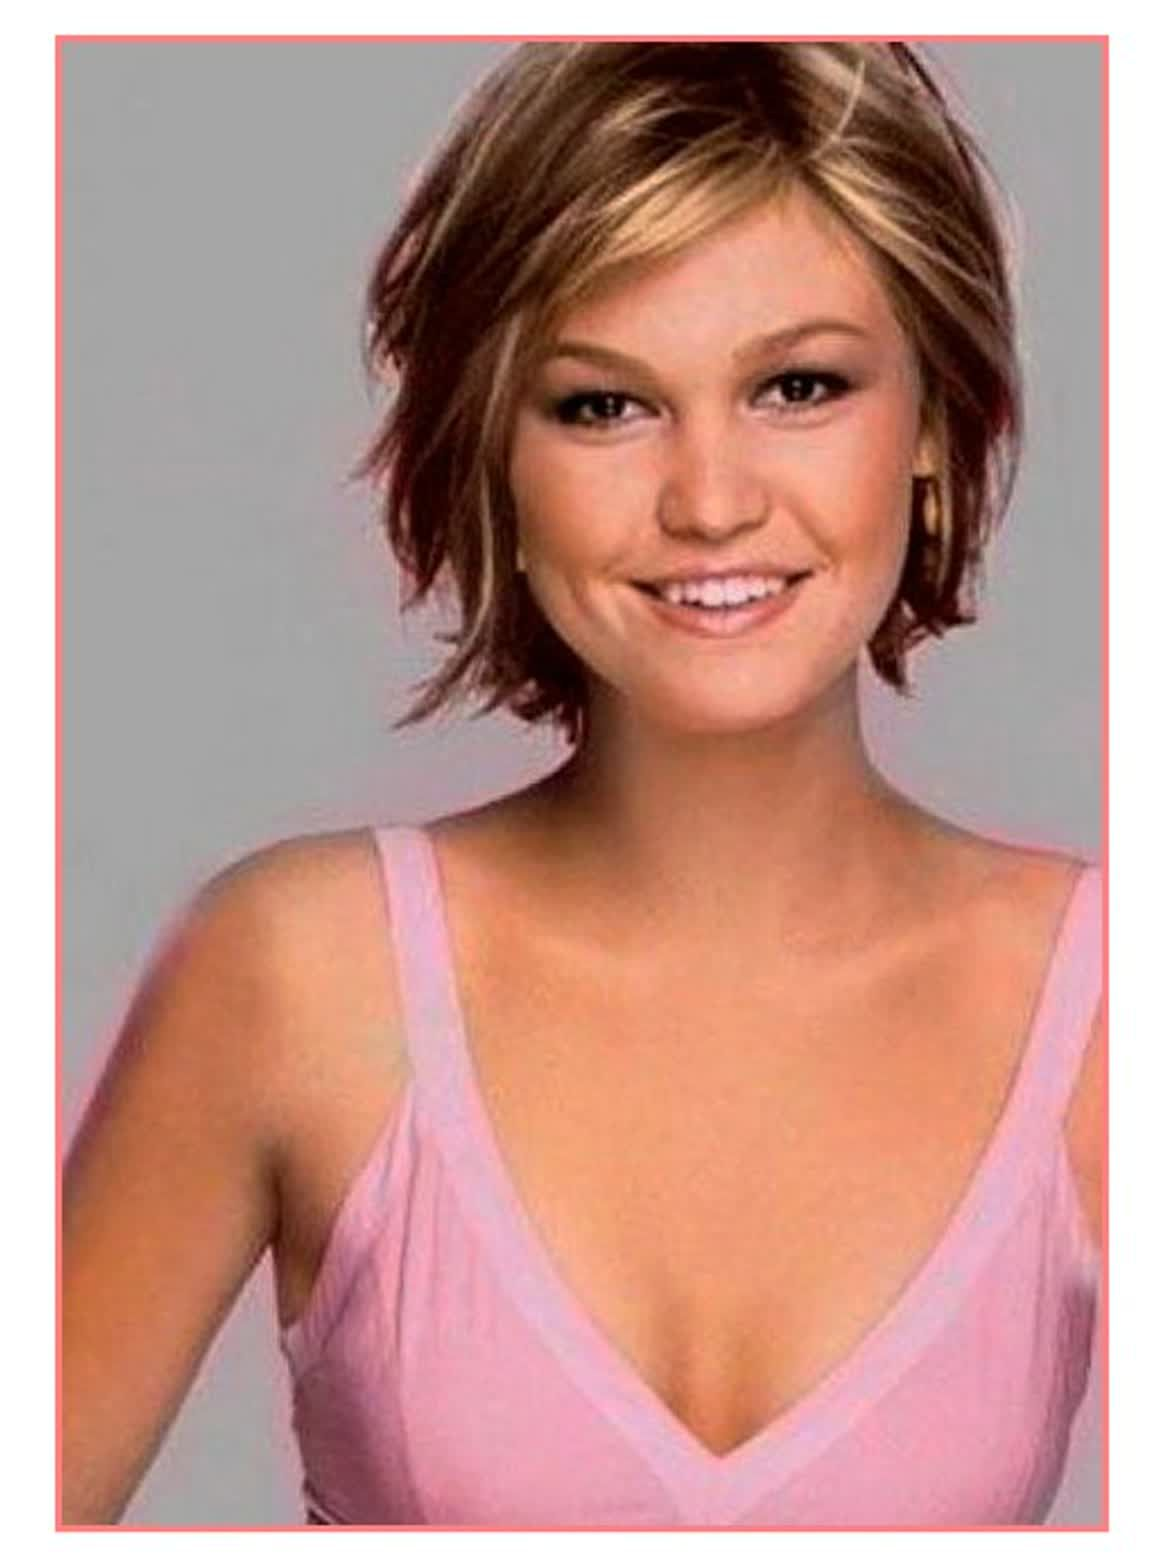 The Haircuts Short Hairstyles For Women In Their 30s Short Hair